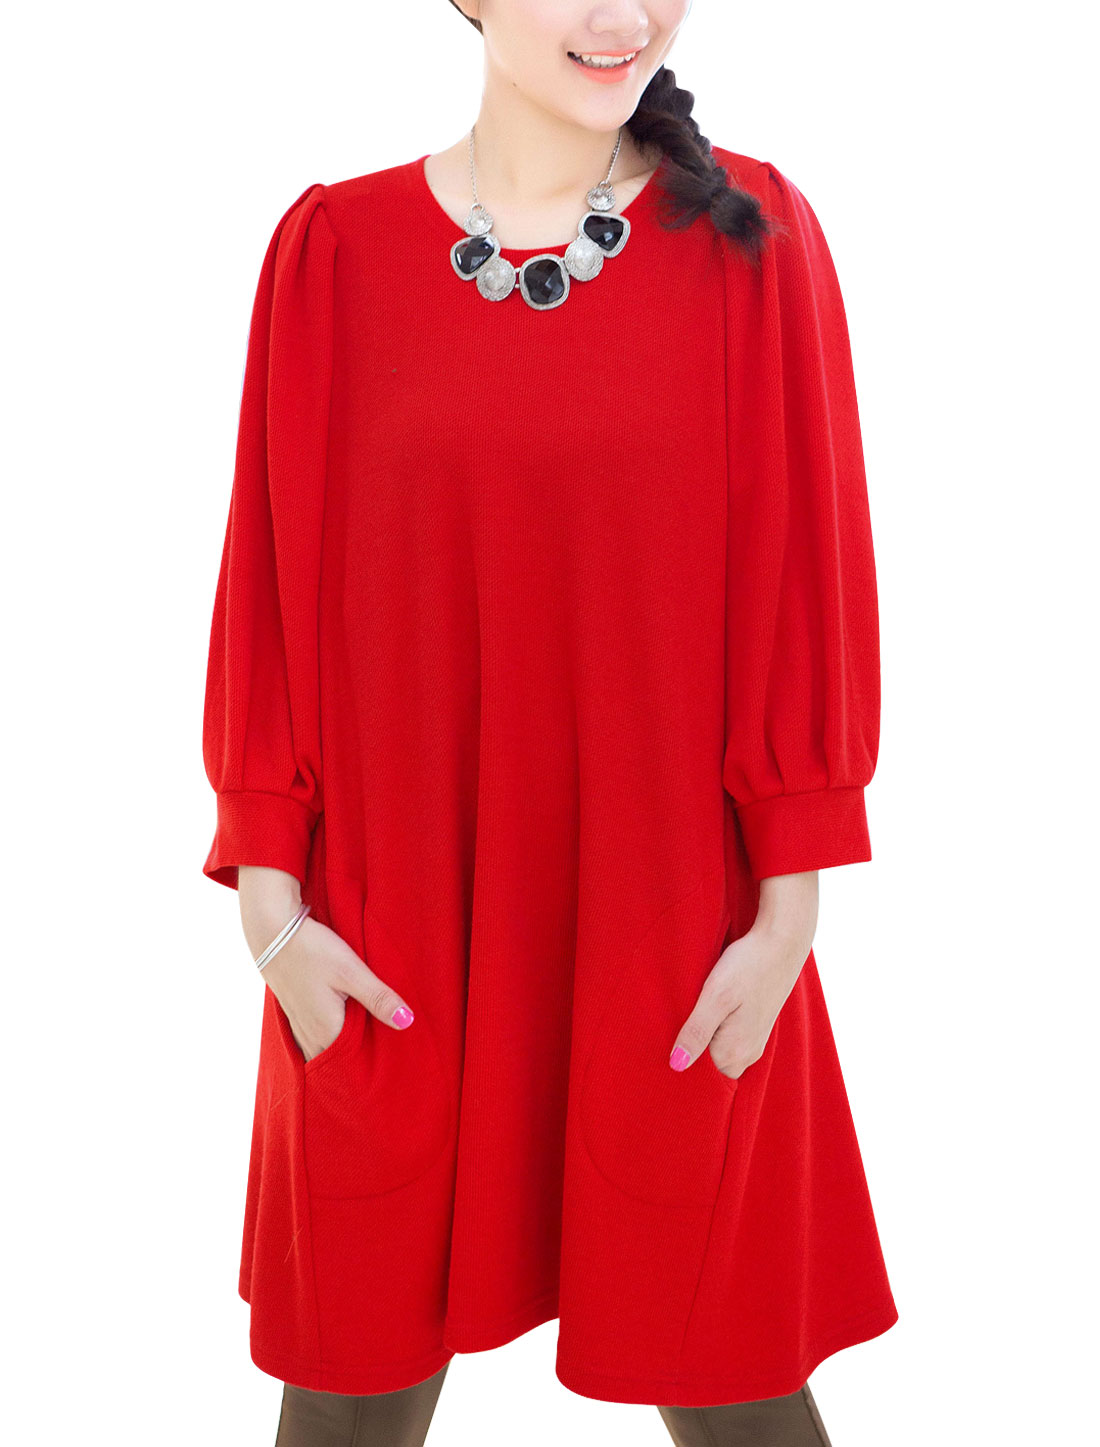 Maternity Newly Soft 3/4 Lantern Sleeves Two Side Pockets Dress Red M